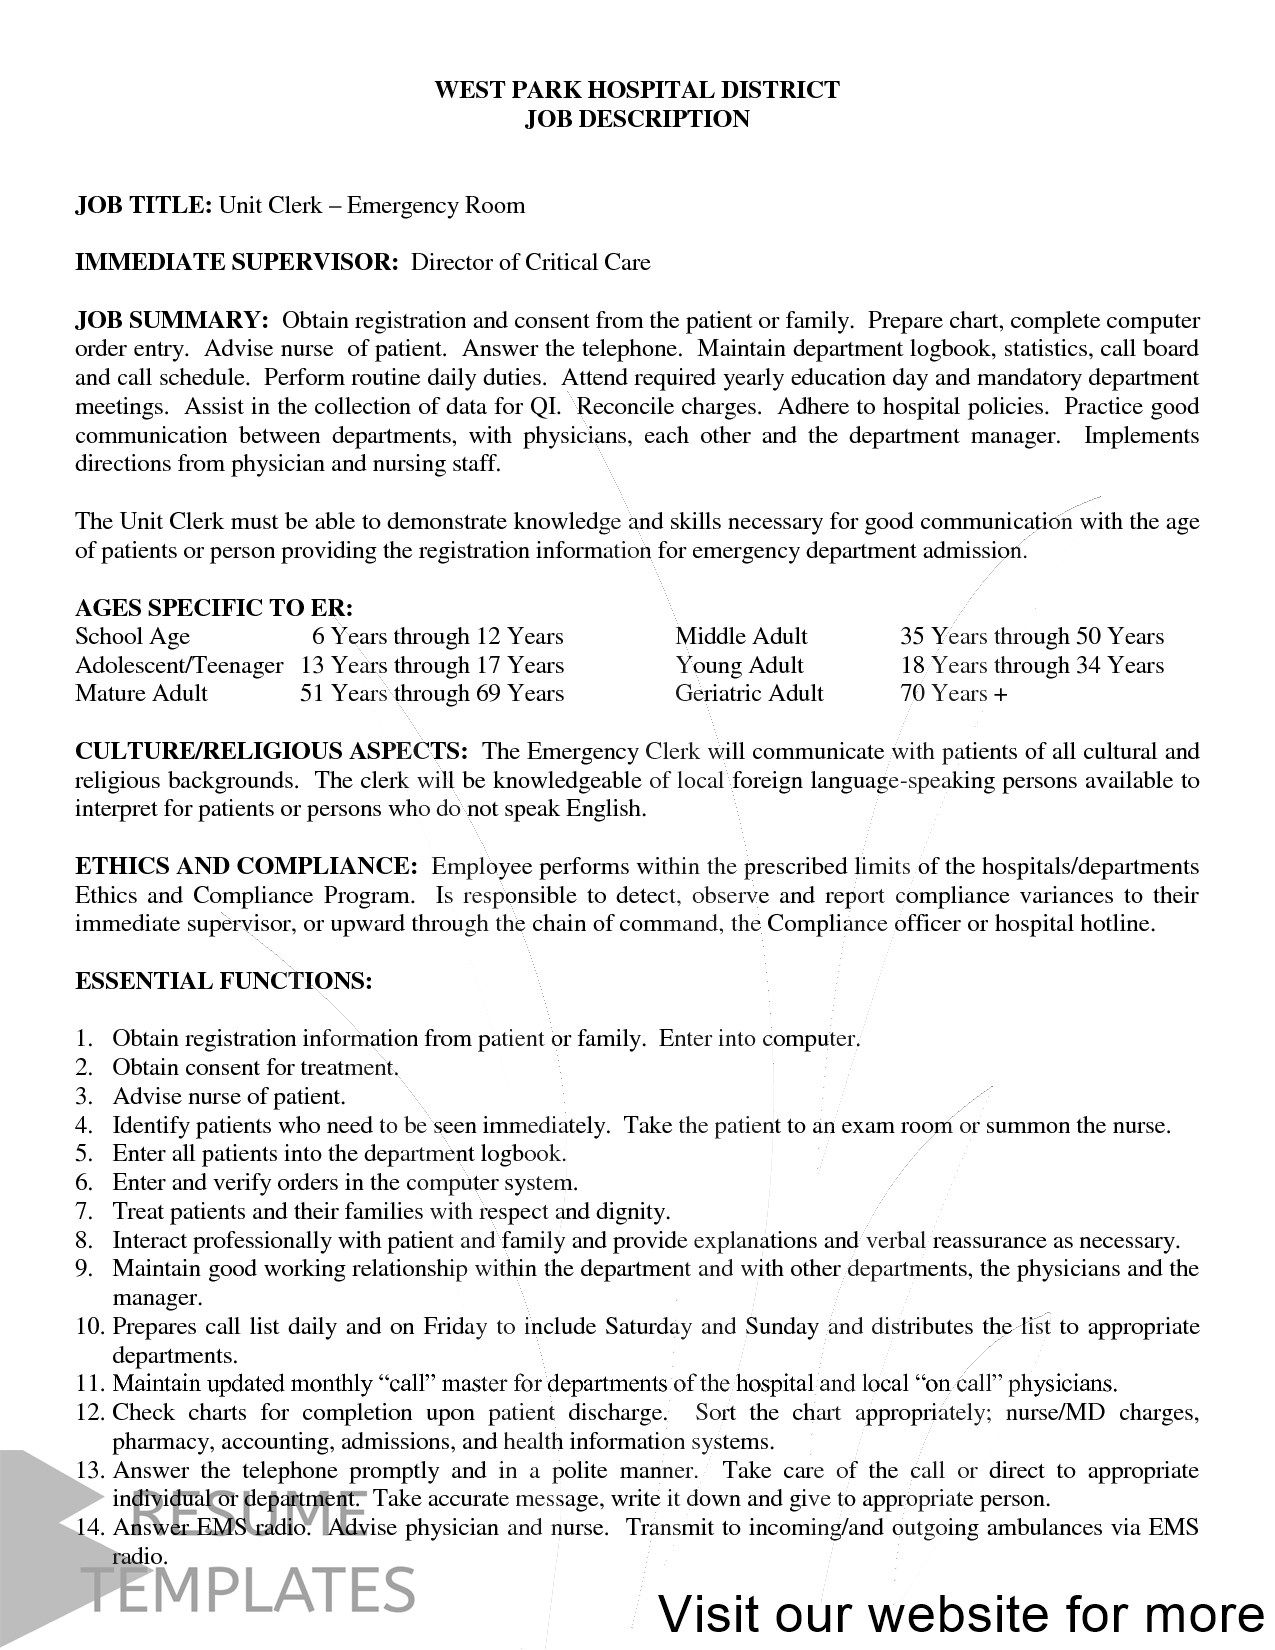 35 page layout design templates professional resume